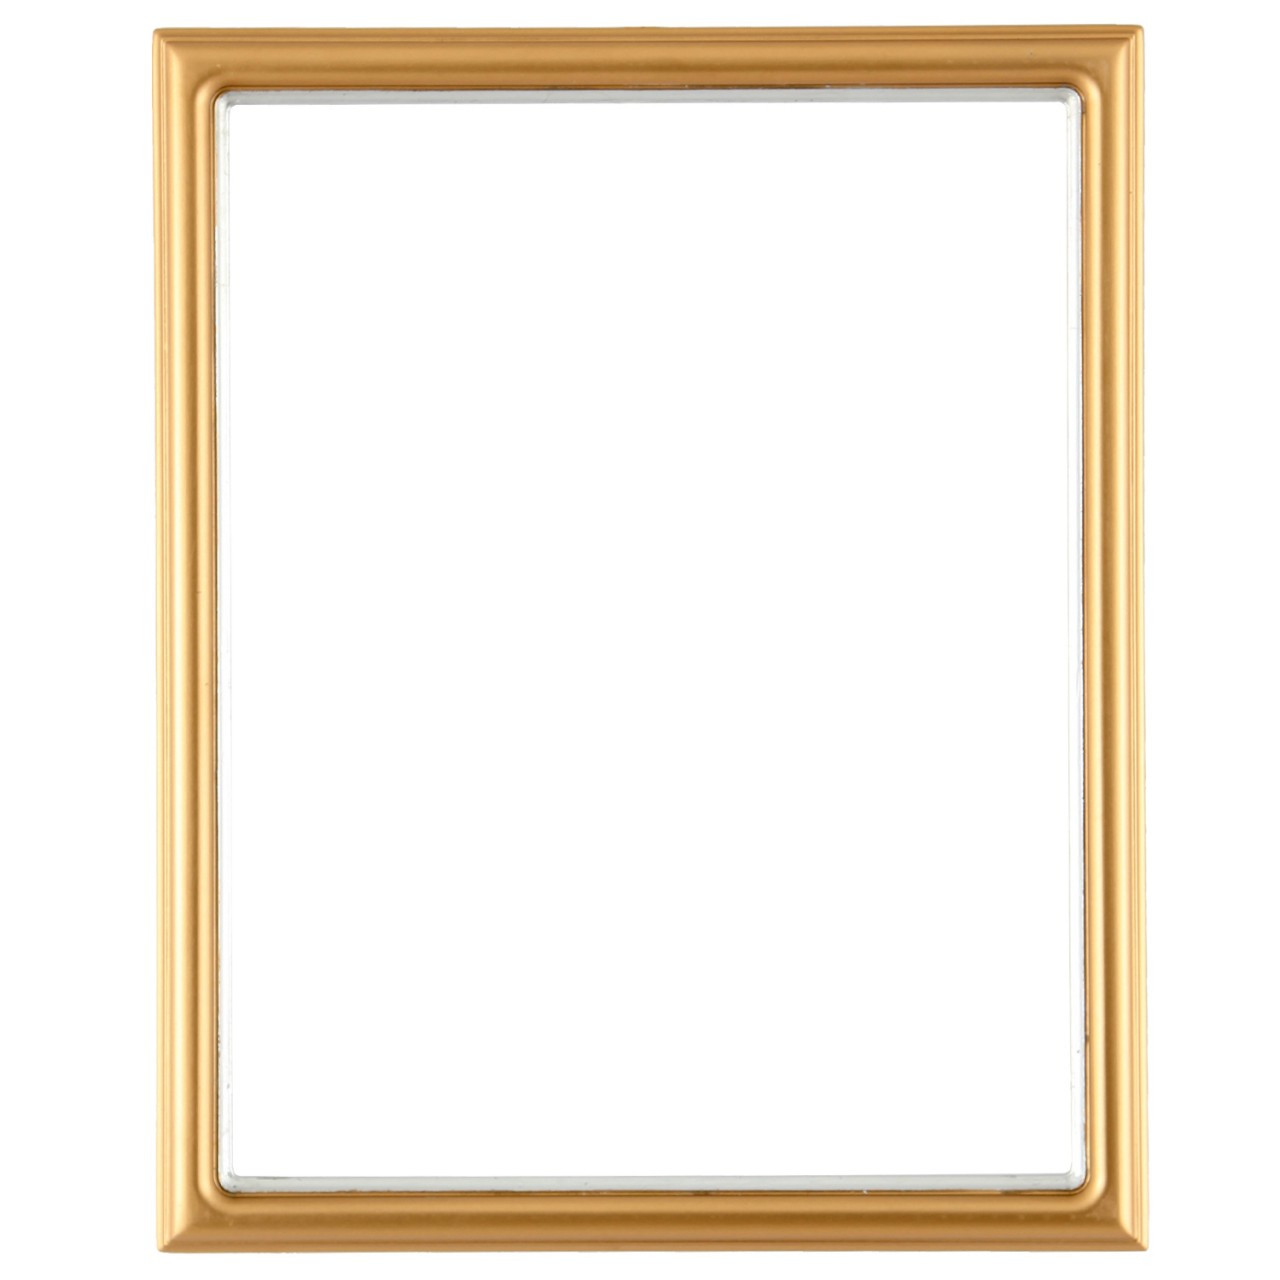 Acrylic Picture Frames 11x14